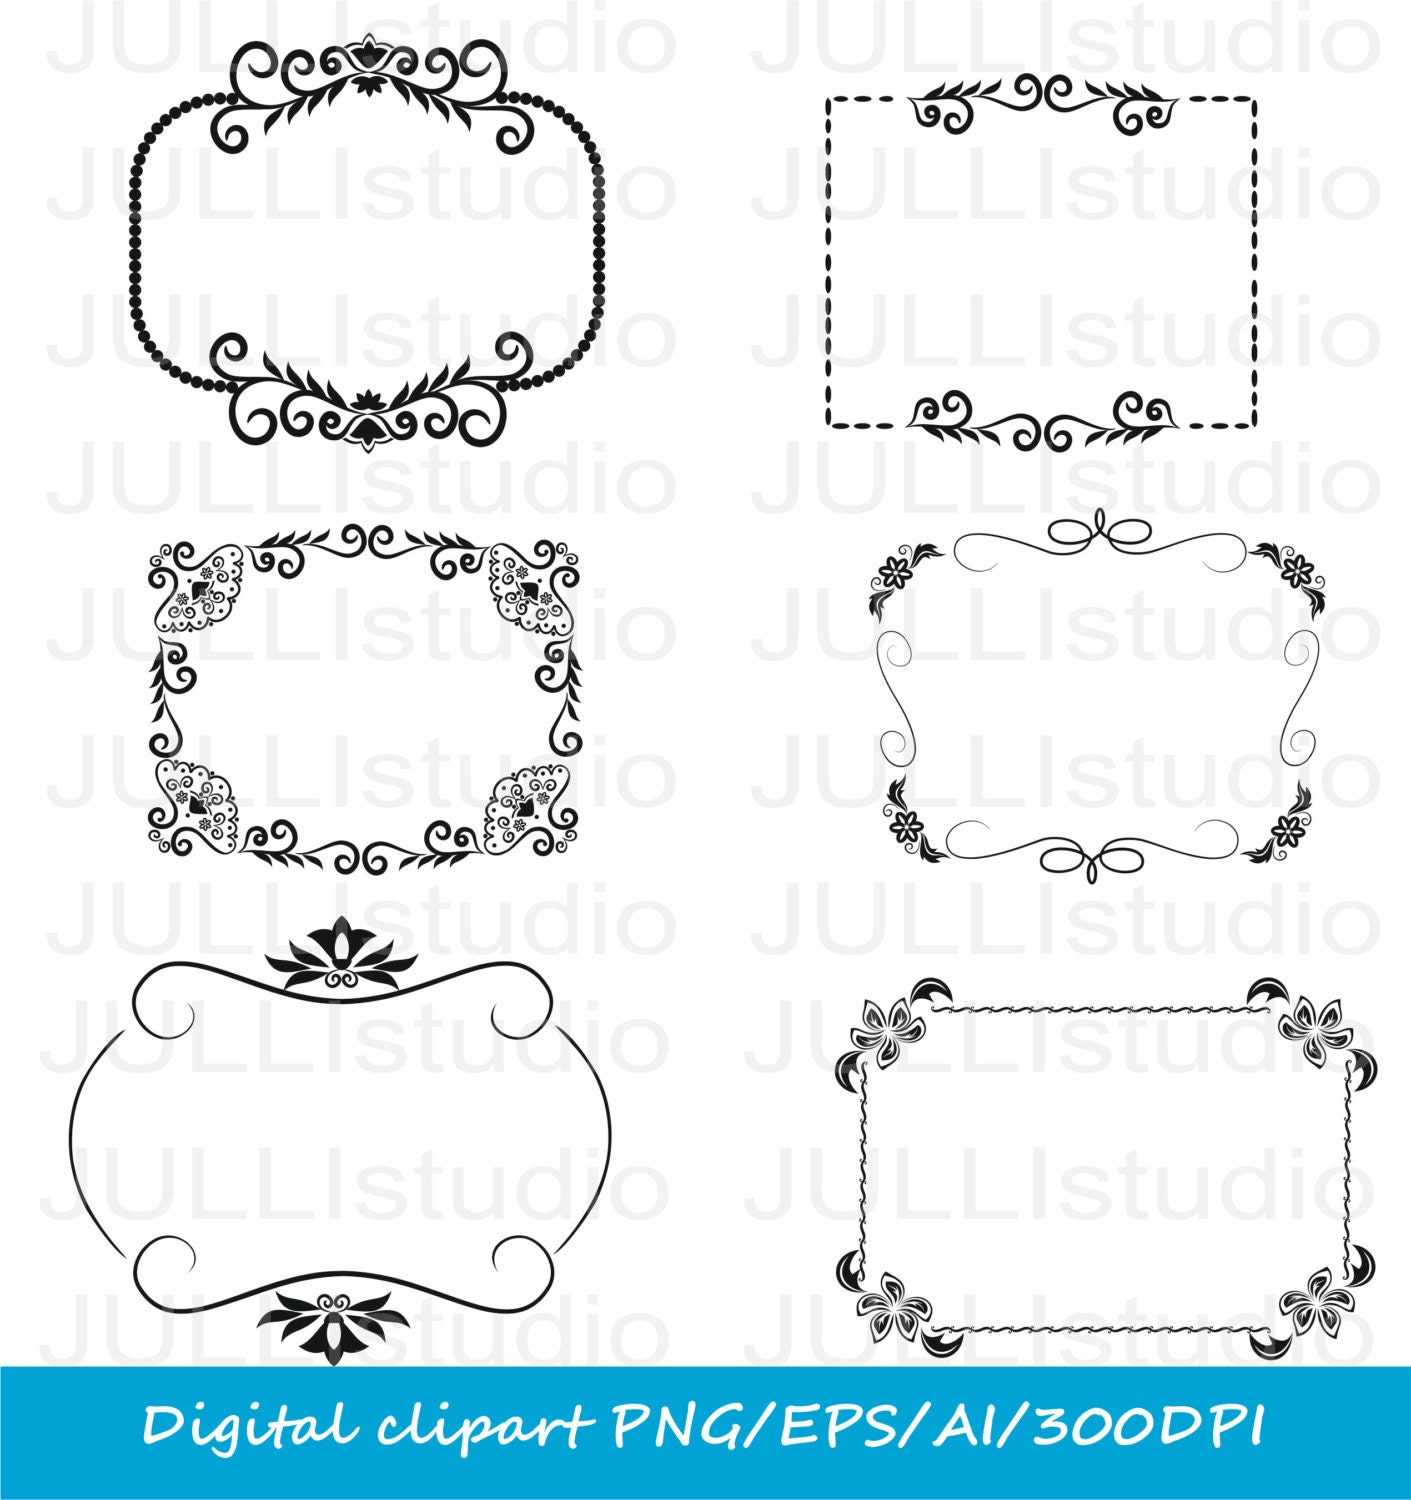 Decorative Design Png Vintage Decor Design